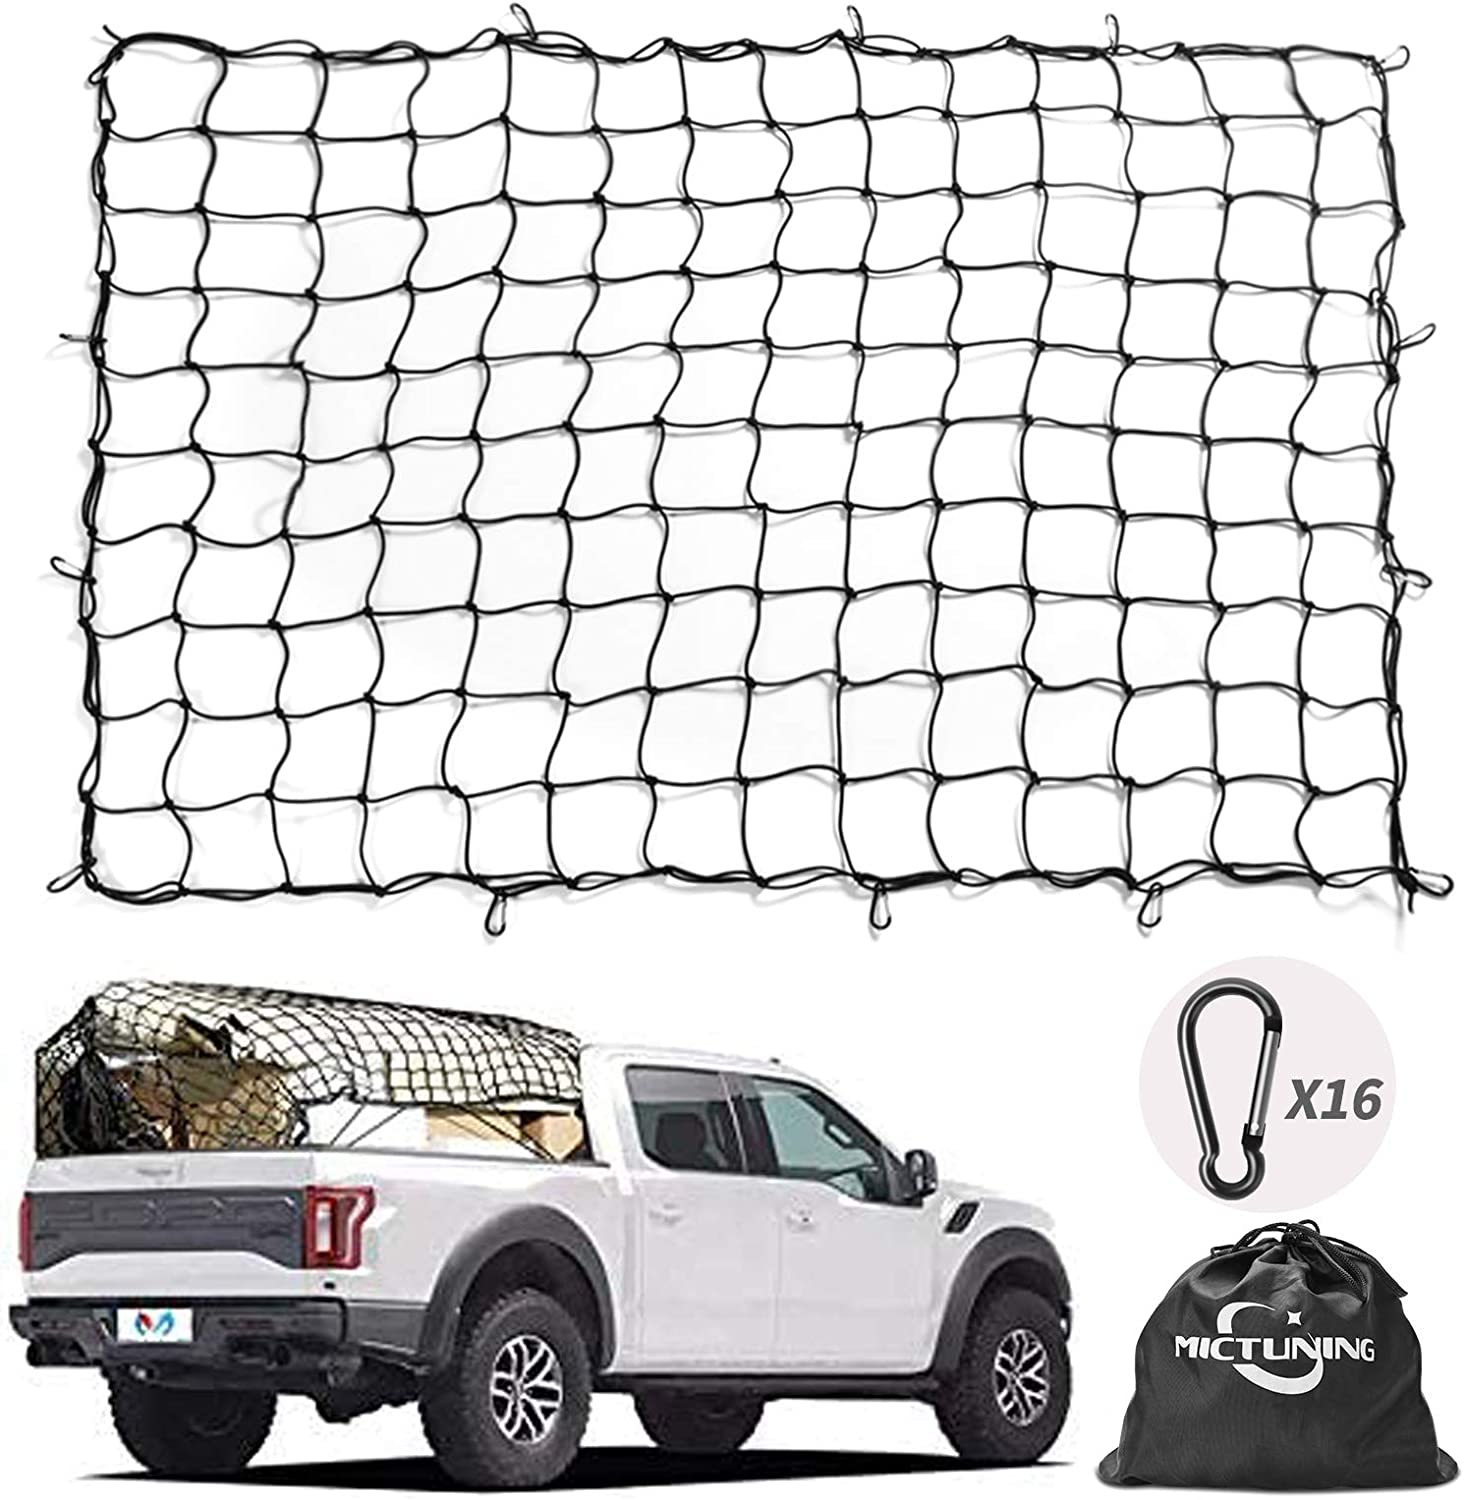 Cargo Net 5x7 Heavy Duty Truck Bed Nets Stretches to 10x14 with 20 Pcs D Clip Carabiners Universal Car Rear Organizer Net for Pickup Bed Trailer SUV Truck,Boat